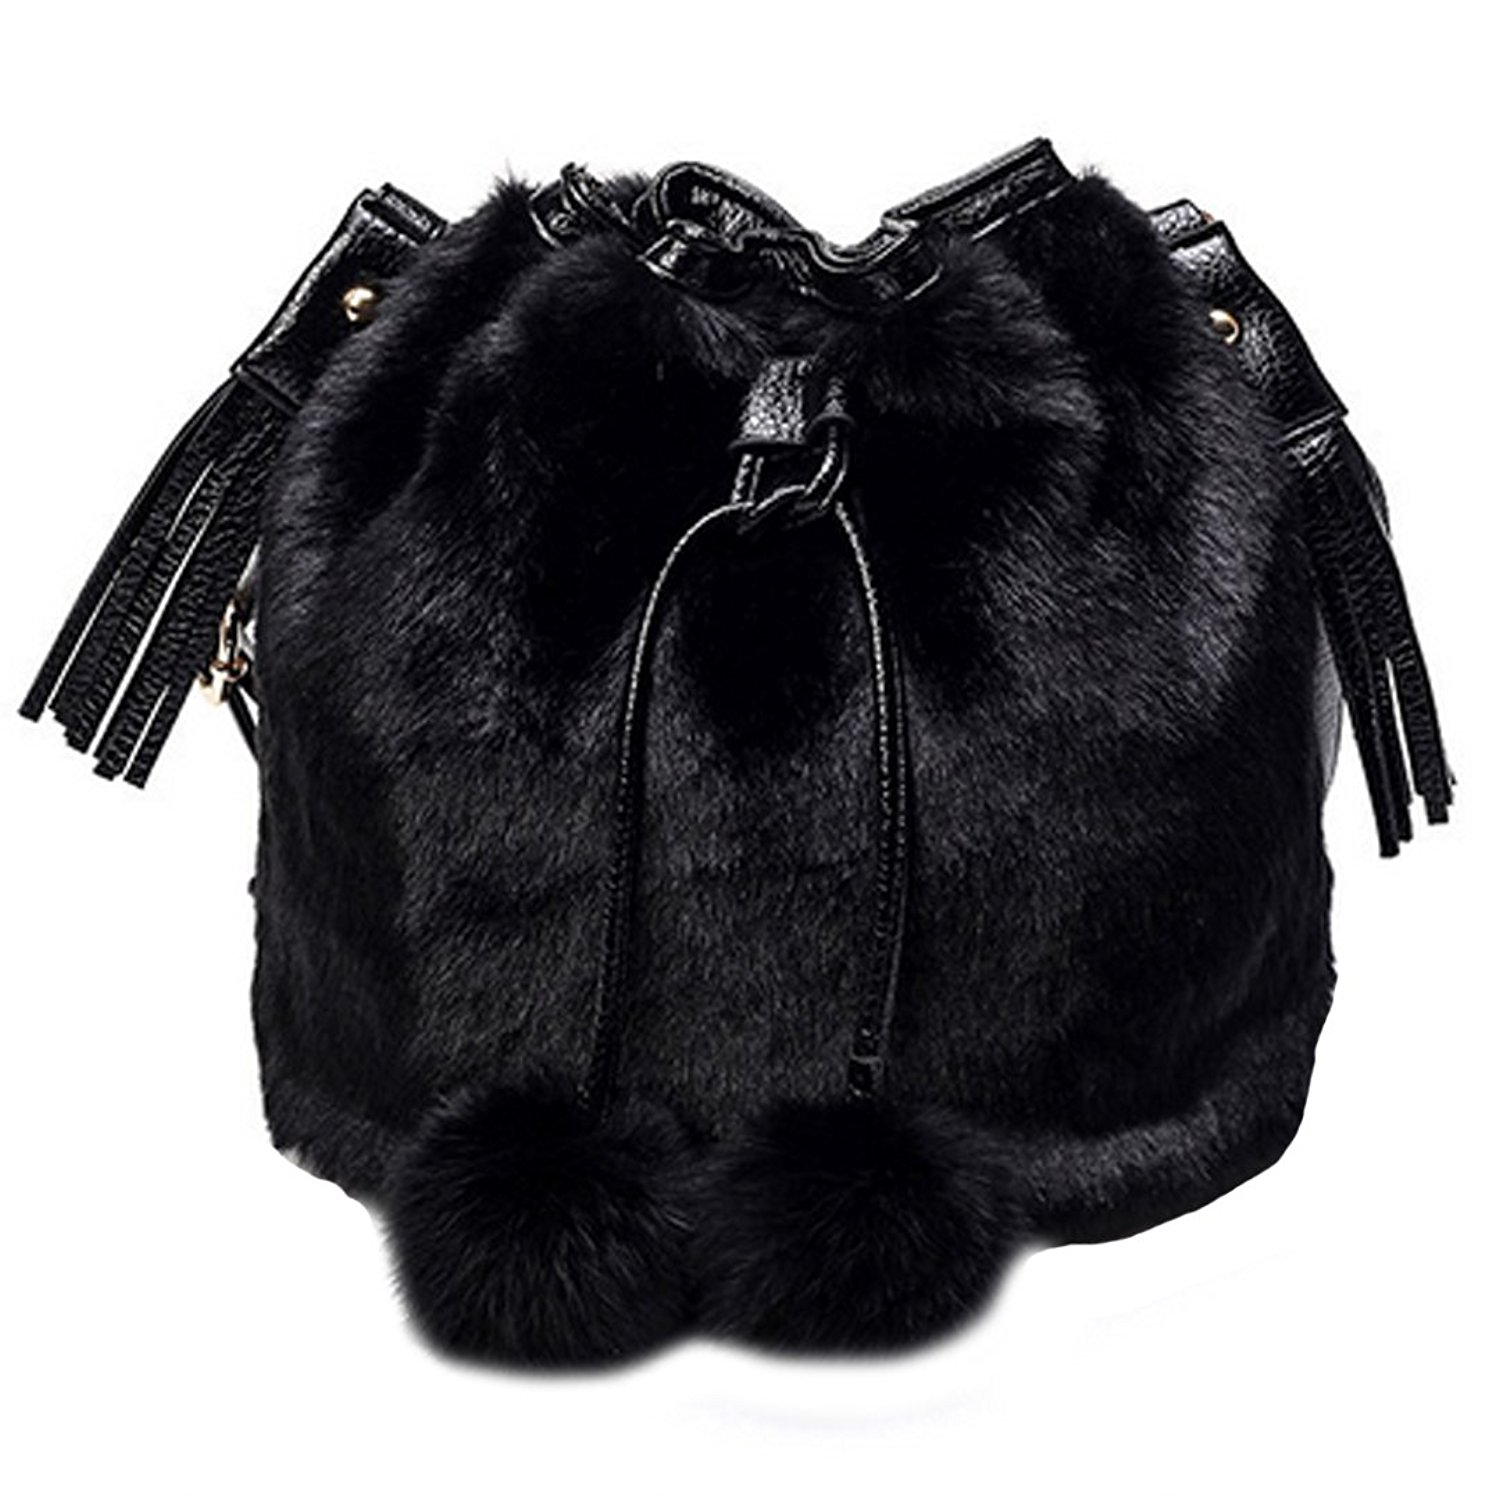 Get Quotations · YAOSEN Women Faux Fur Bucket Bag Plush Drawstring Shoulder  Bag Crossbody Bag with Pompon bfd02e6111064